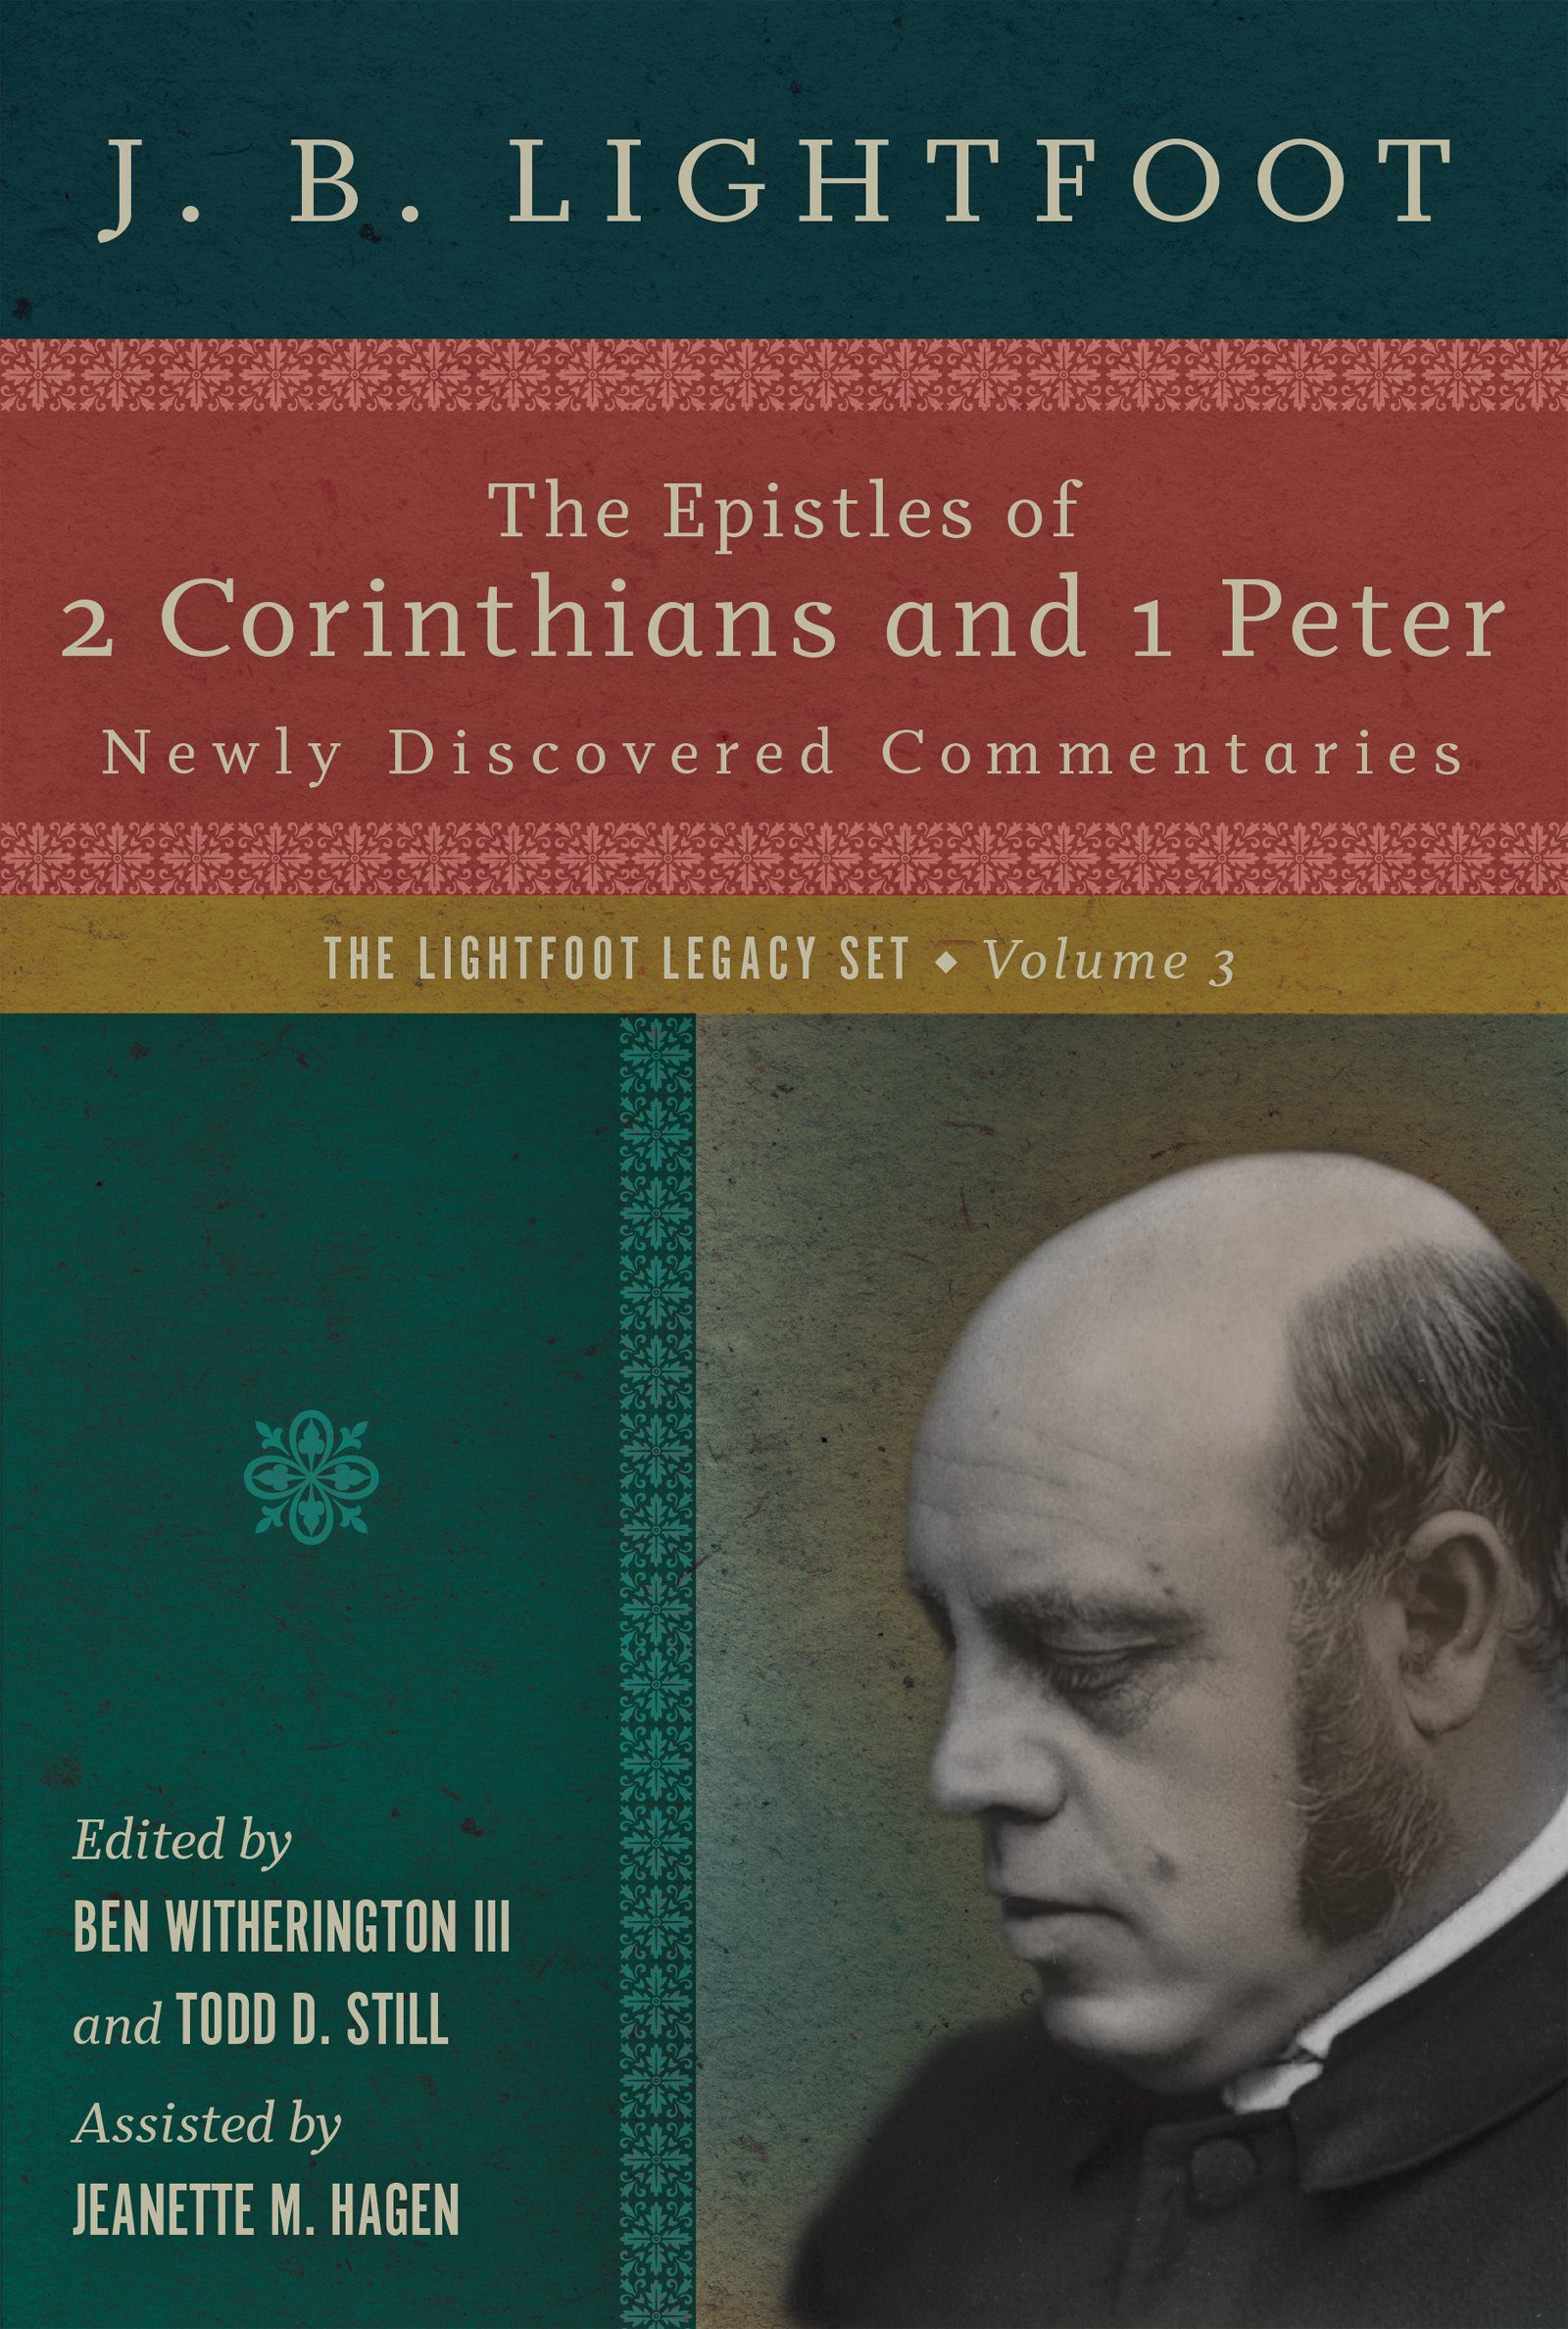 The Epistles of 2 Corinthians and 1 Peter: Newly Discovered Commentaries (Lightfoot Legacy Set)